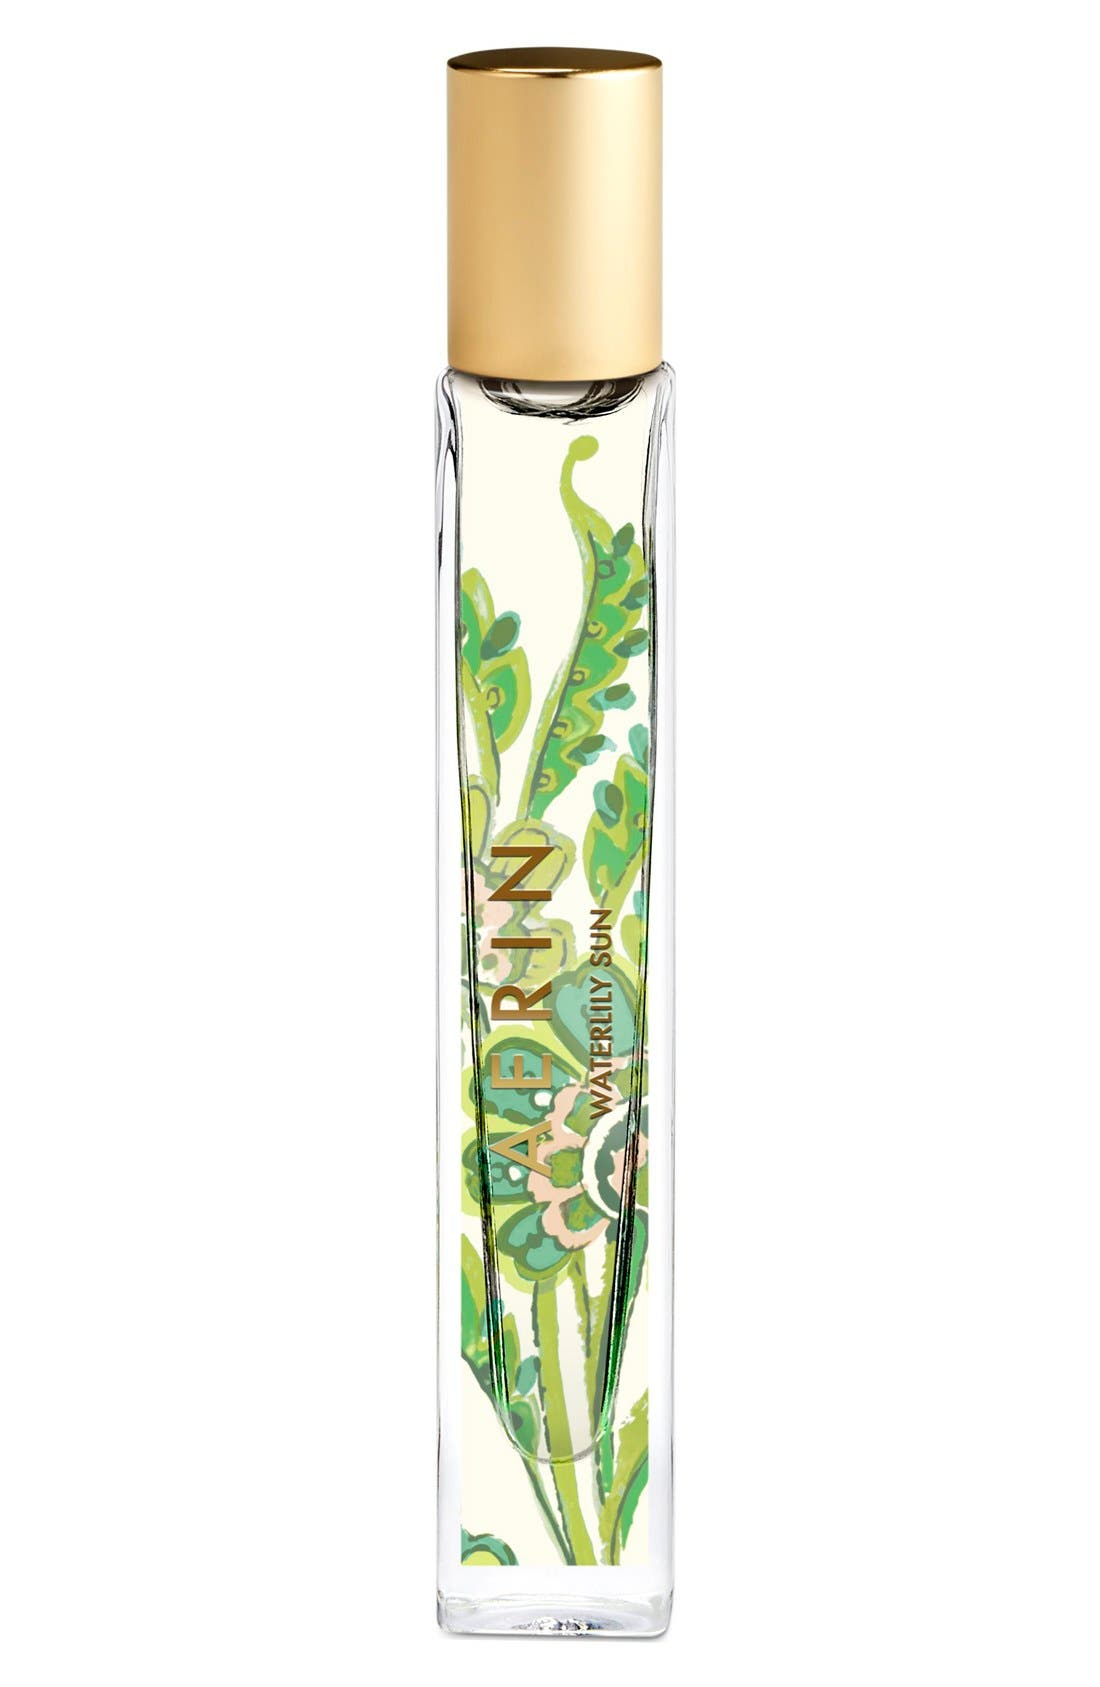 AERIN Beauty Waterlily Sun Rollerball,                             Main thumbnail 1, color,                             000